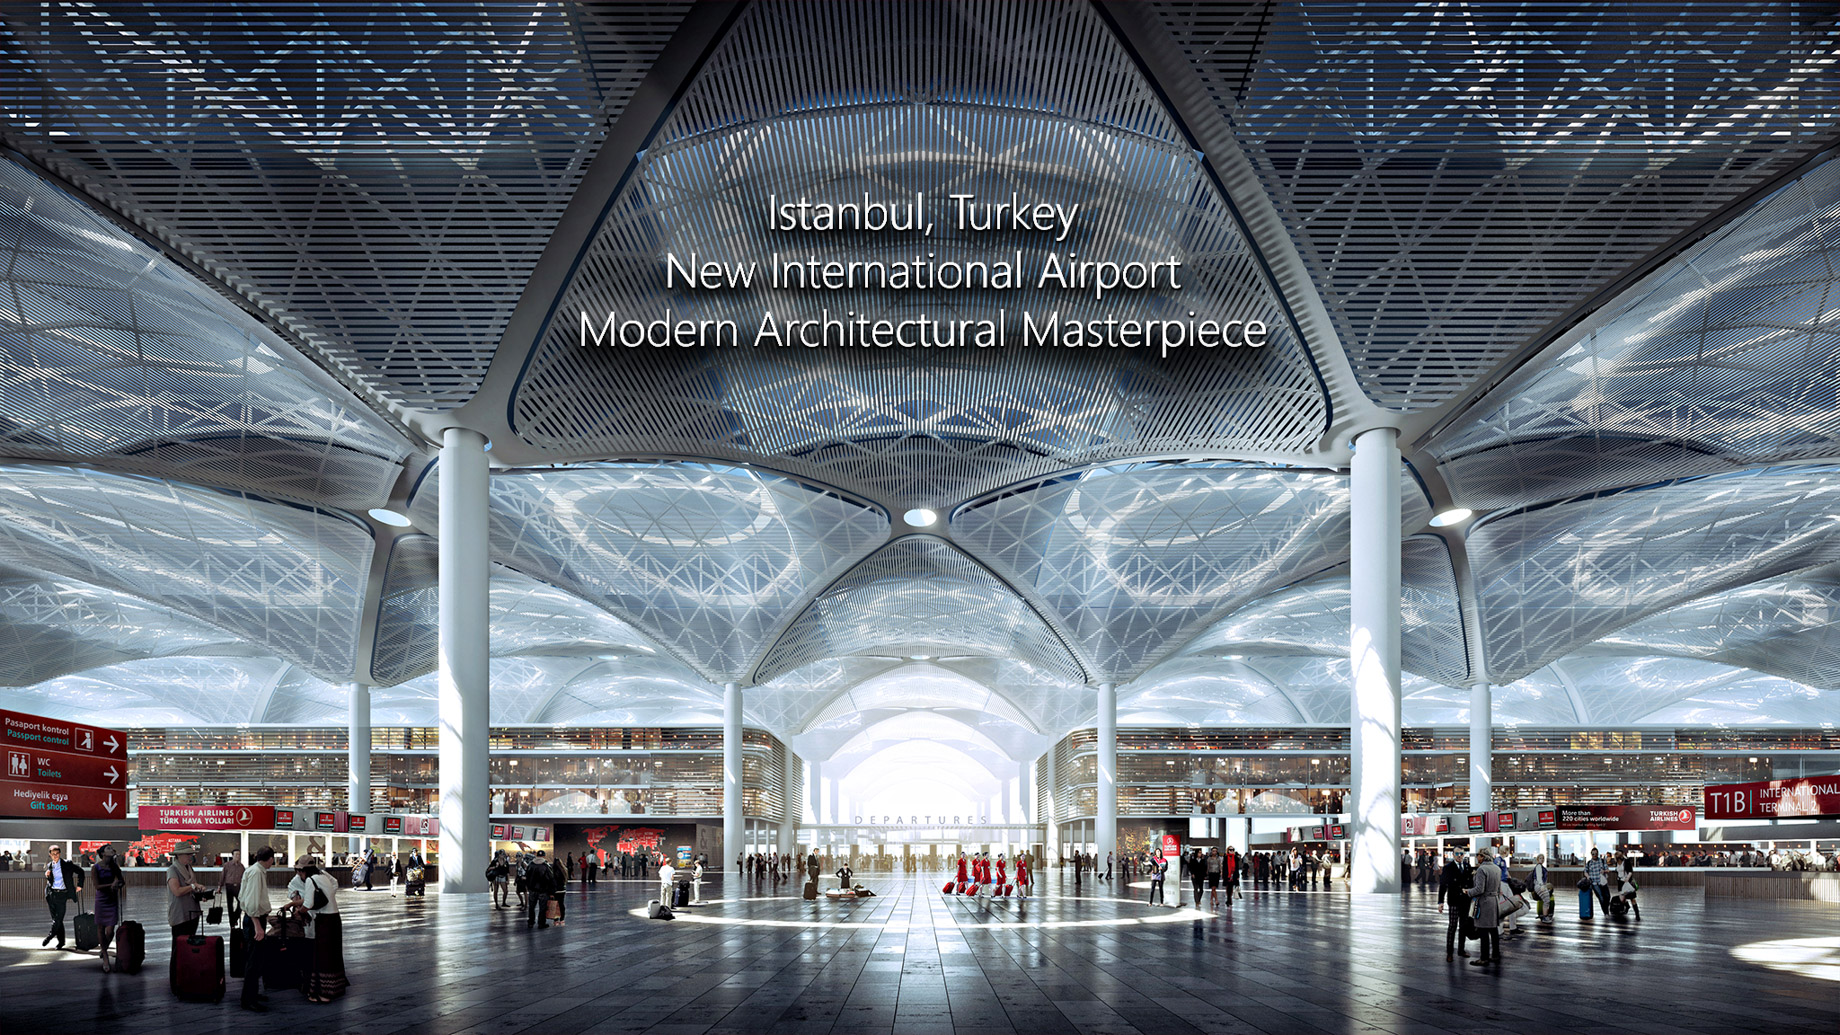 New International Airport in Istanbul, Turkey will be a Modern Architectural Masterpiece